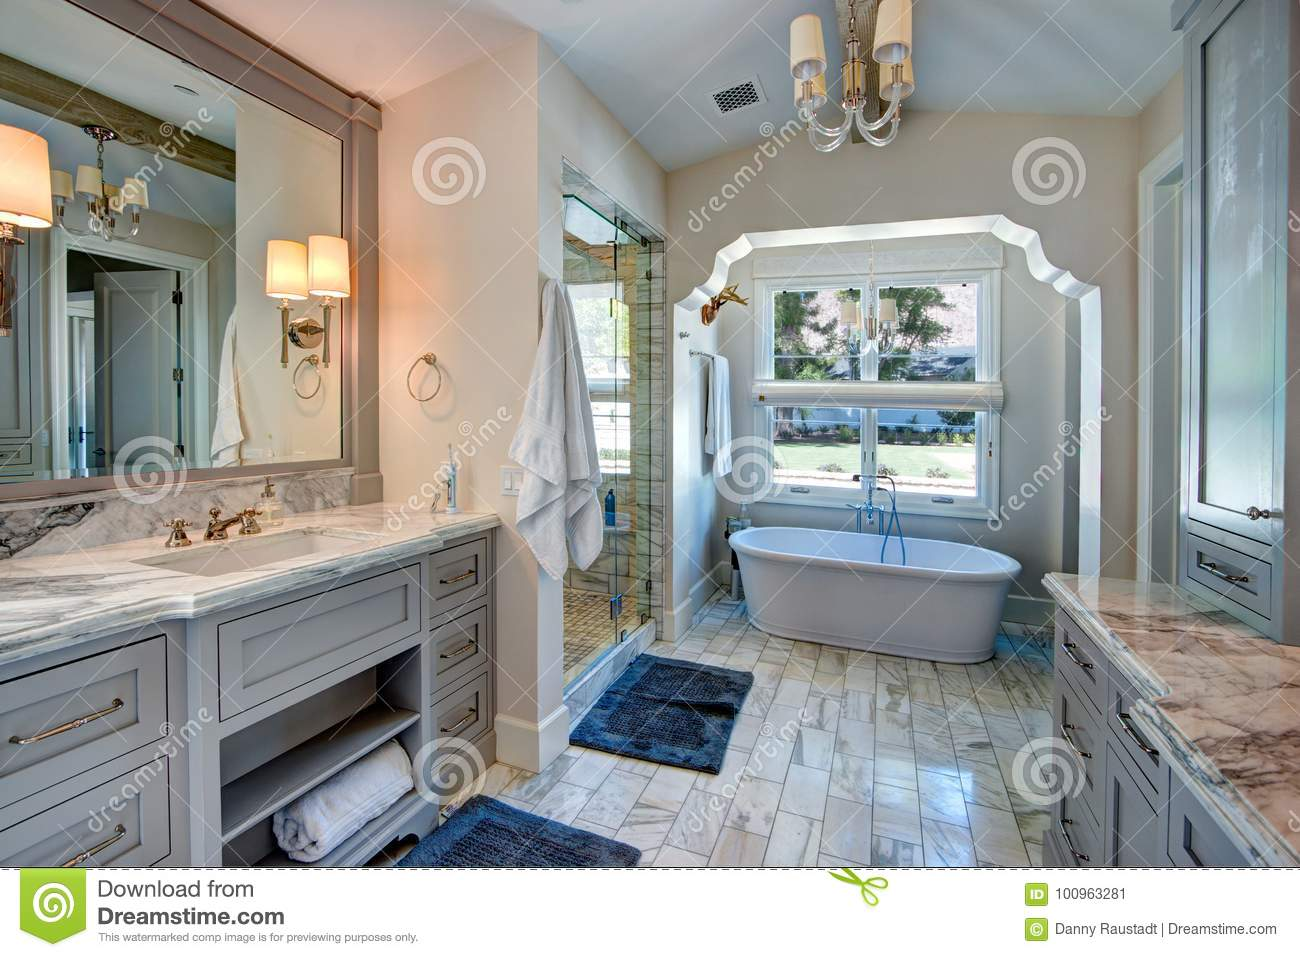 465 770 Bathroom Photos Free Royalty Free Stock Photos From Dreamstime